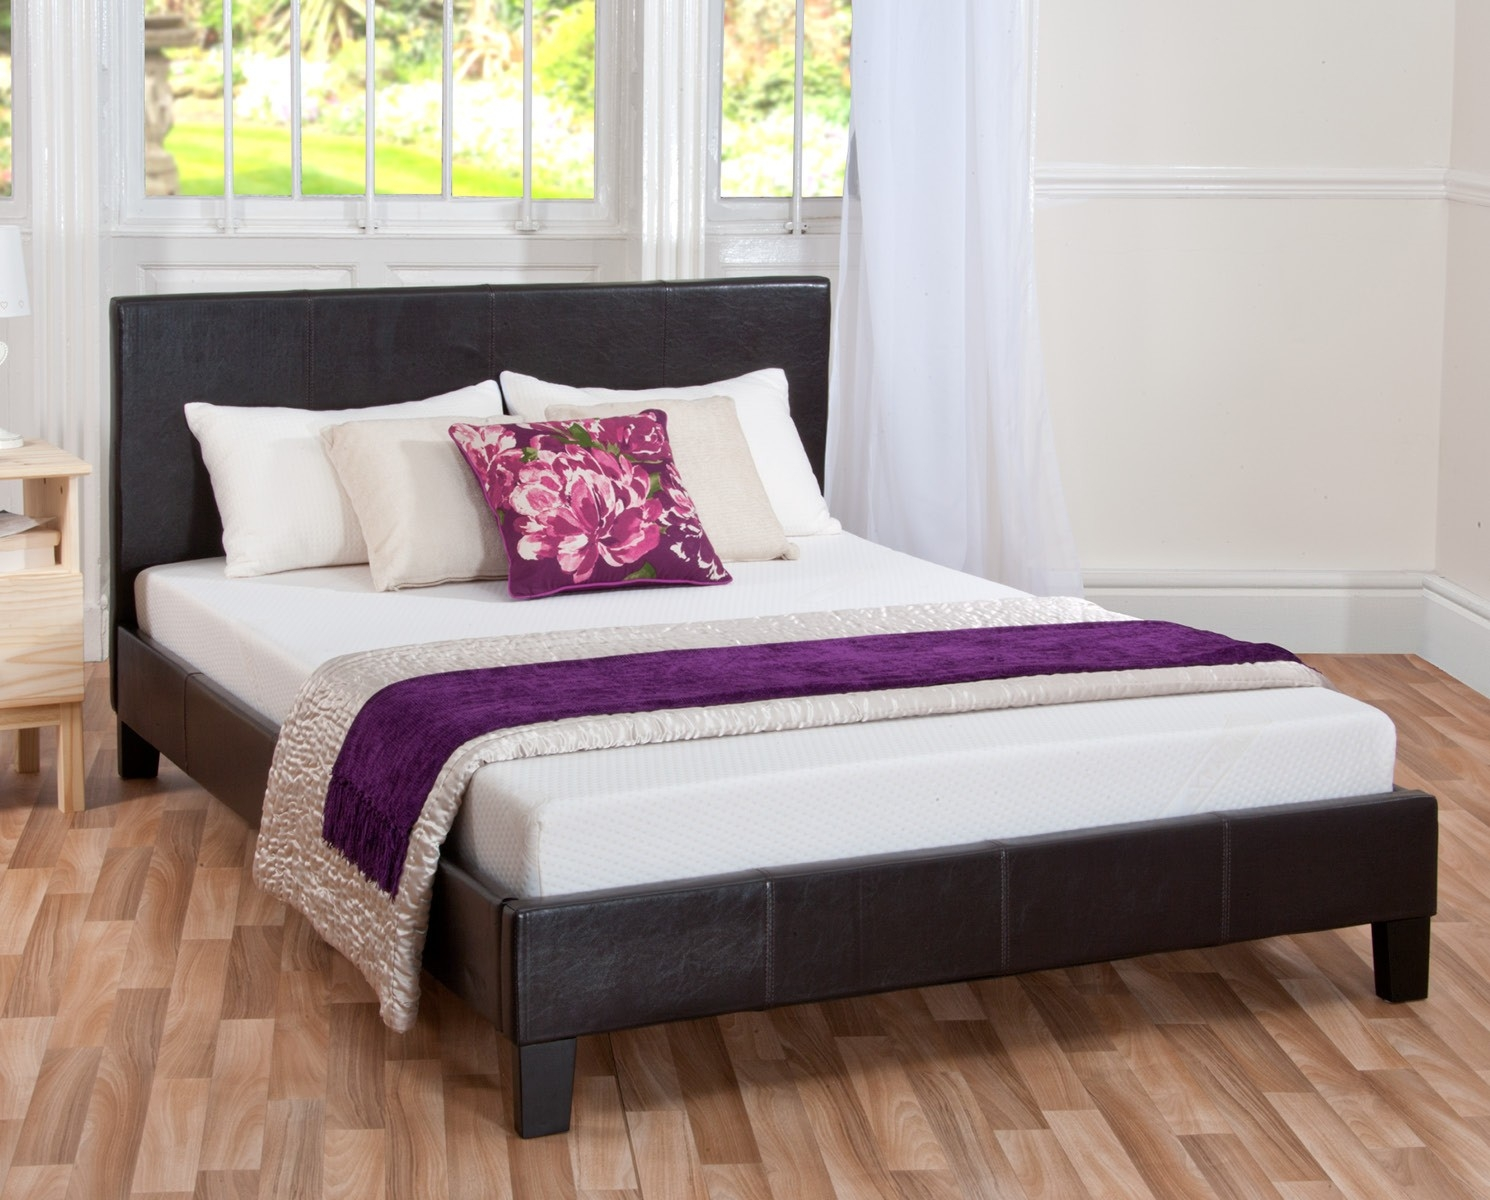 Double Mattress Bed Frame